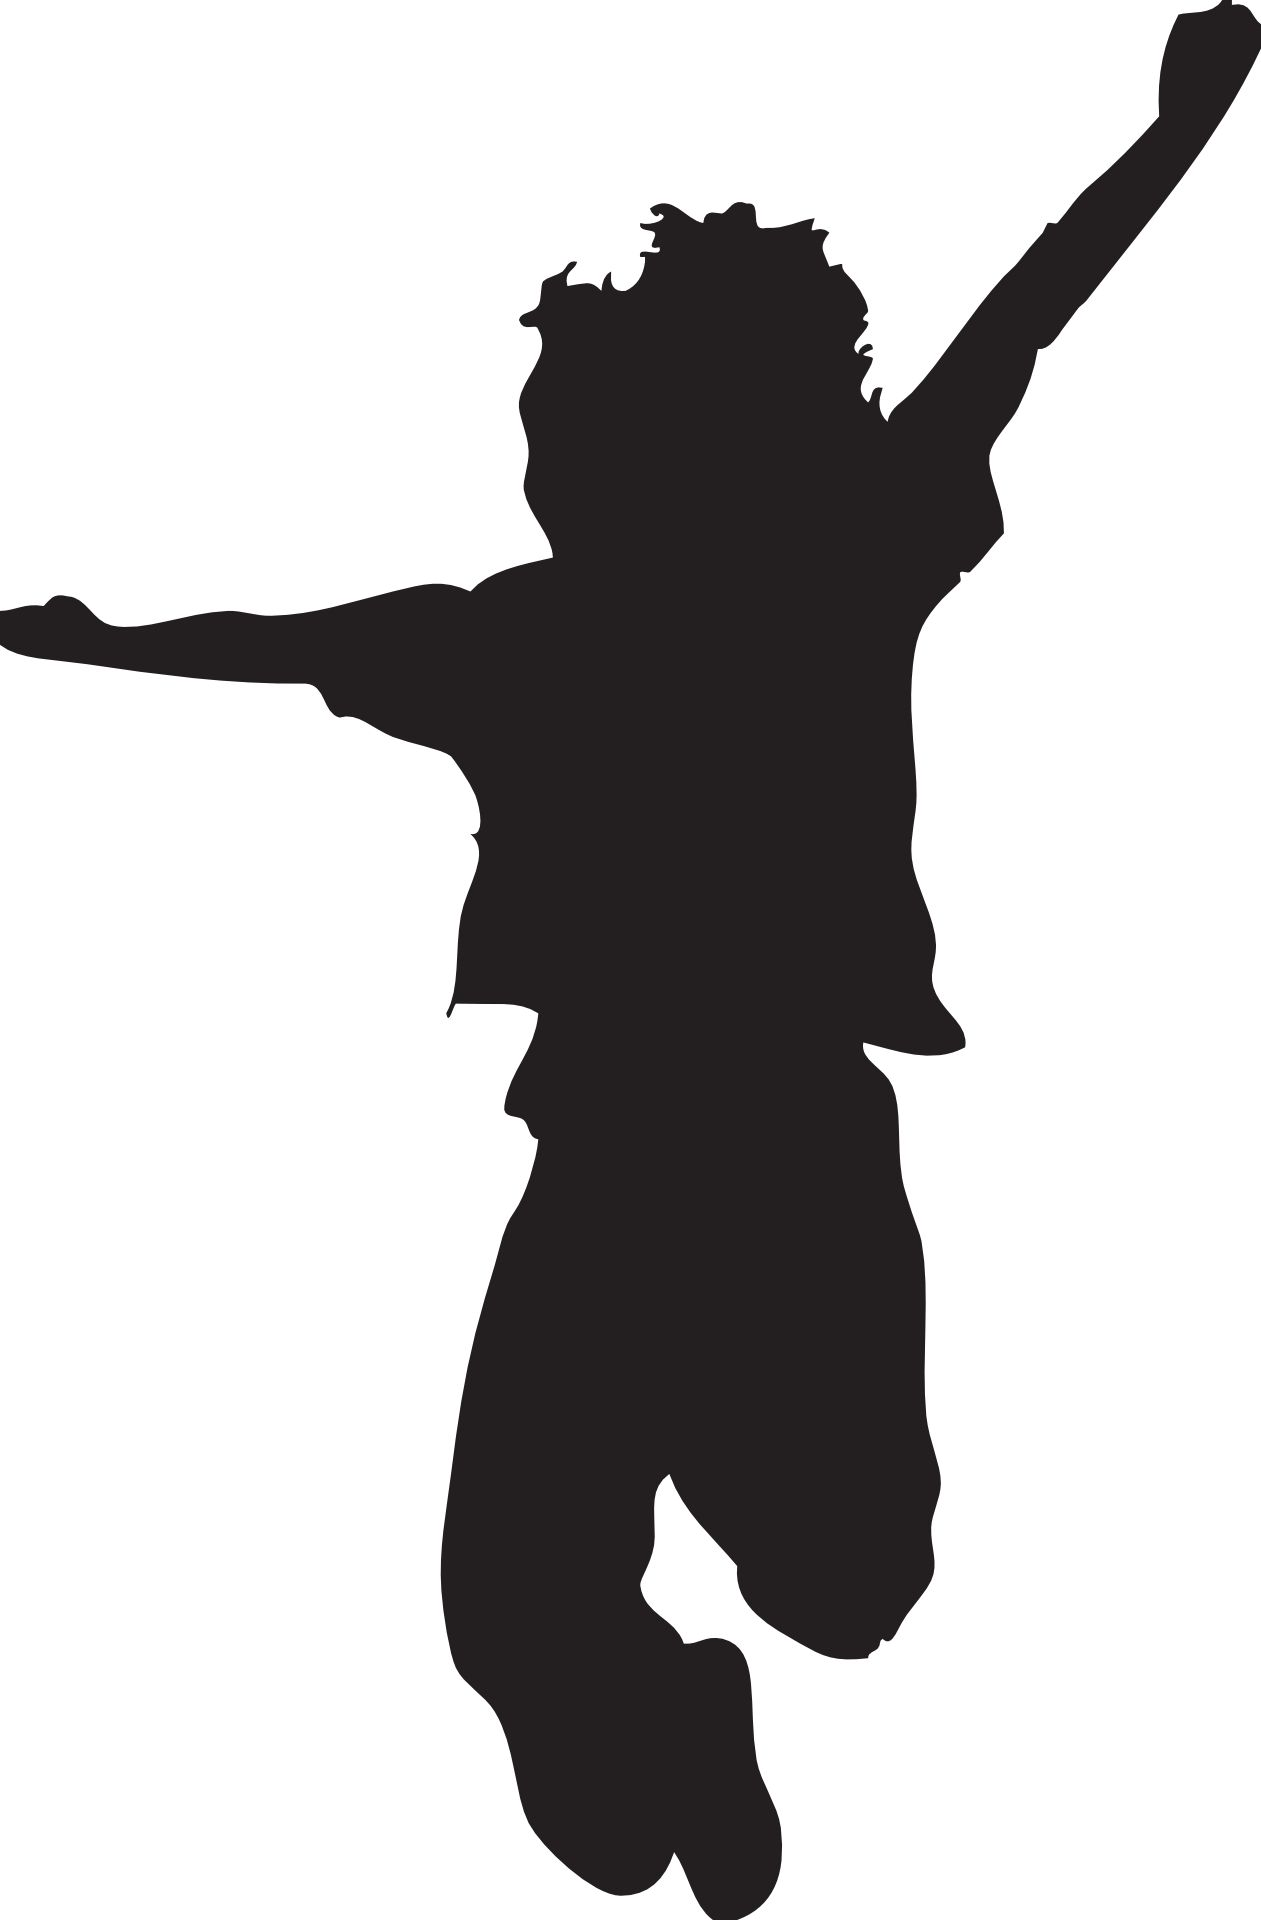 Toddler silhouette clipart free download Jumping Silhouette Clipart - Clipart Kid | Silhouettes ... free download